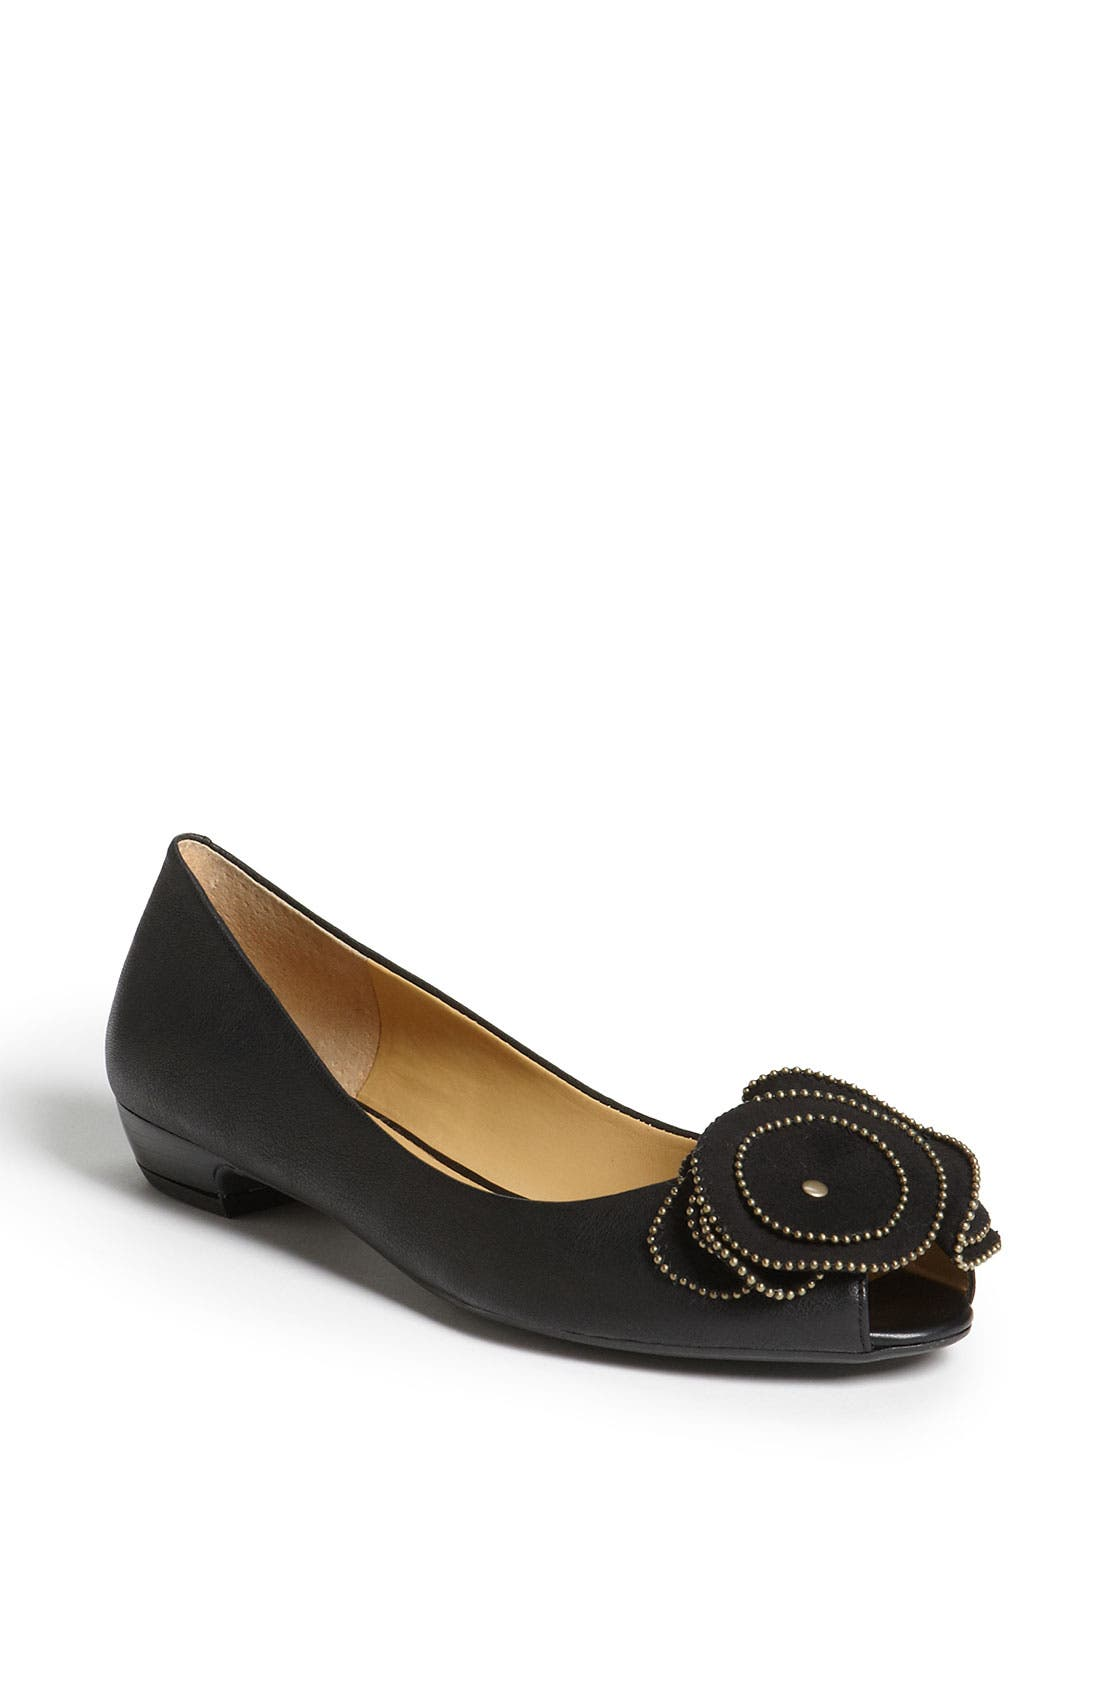 Main Image - Nine West 'Jeanious' Flat